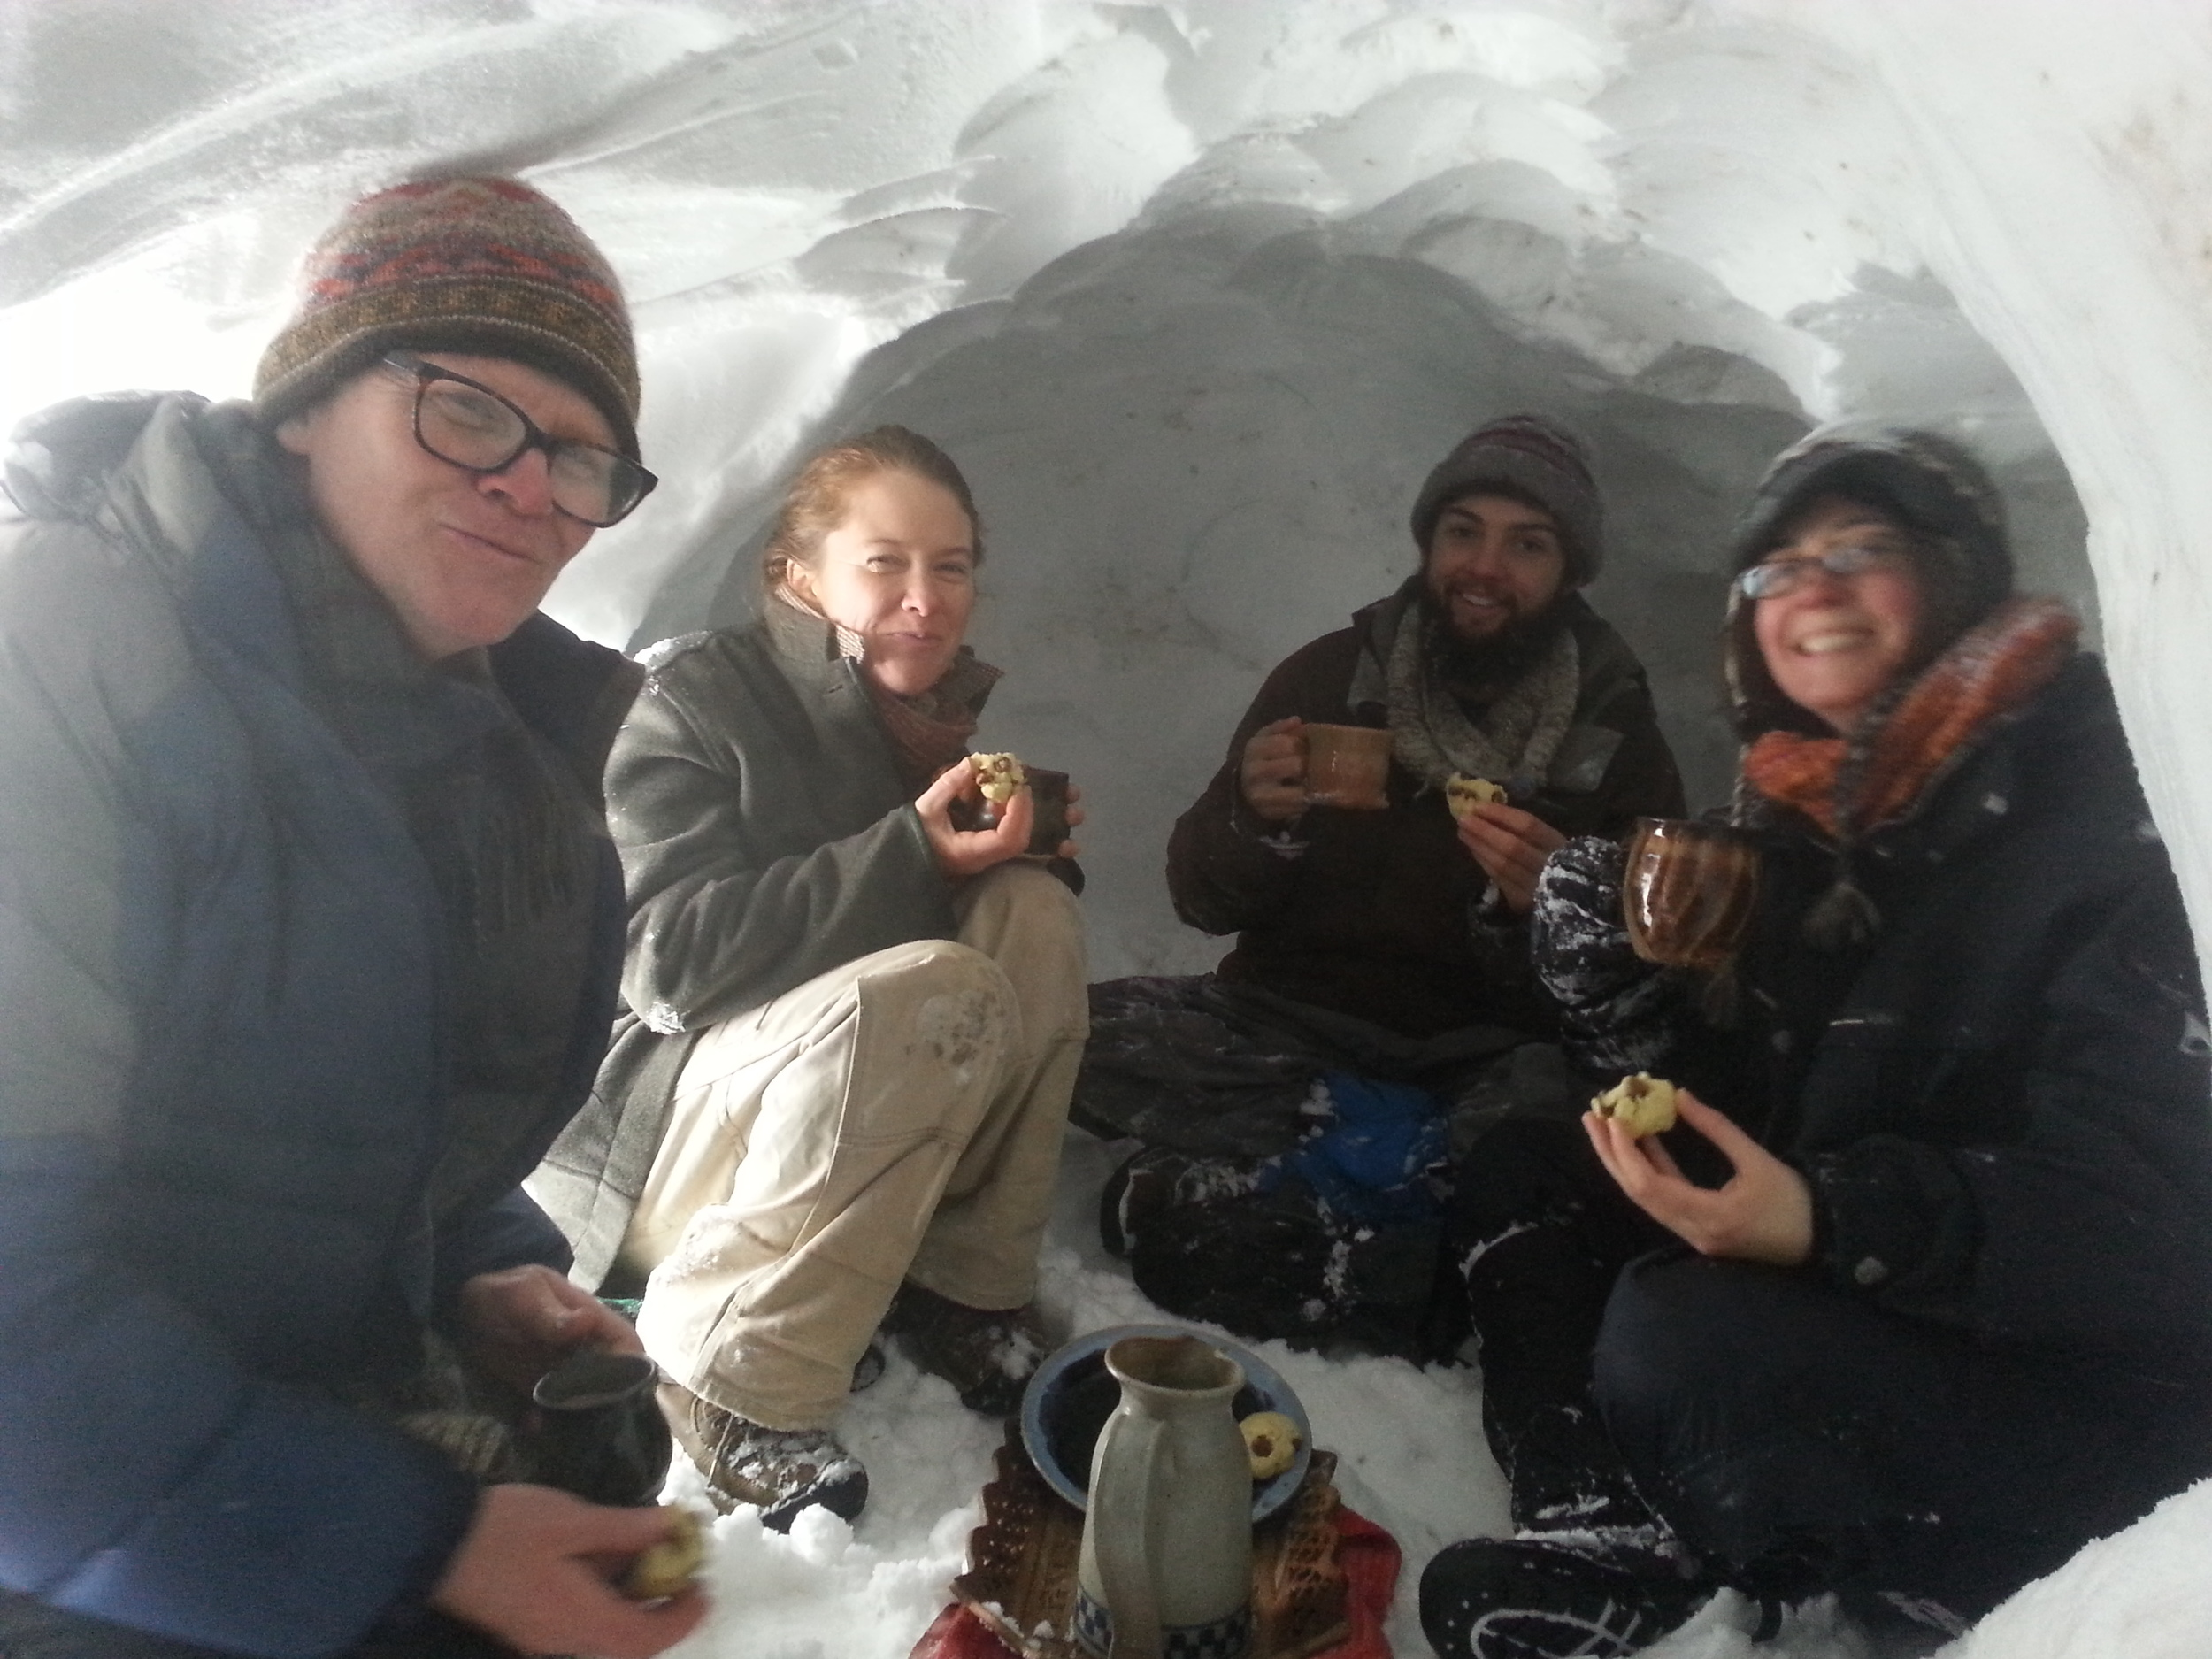 We built a snow cave! And fit five adults and one large dog in it. Then we ate cookies and hot cocoa inside our cave. Yum yum.